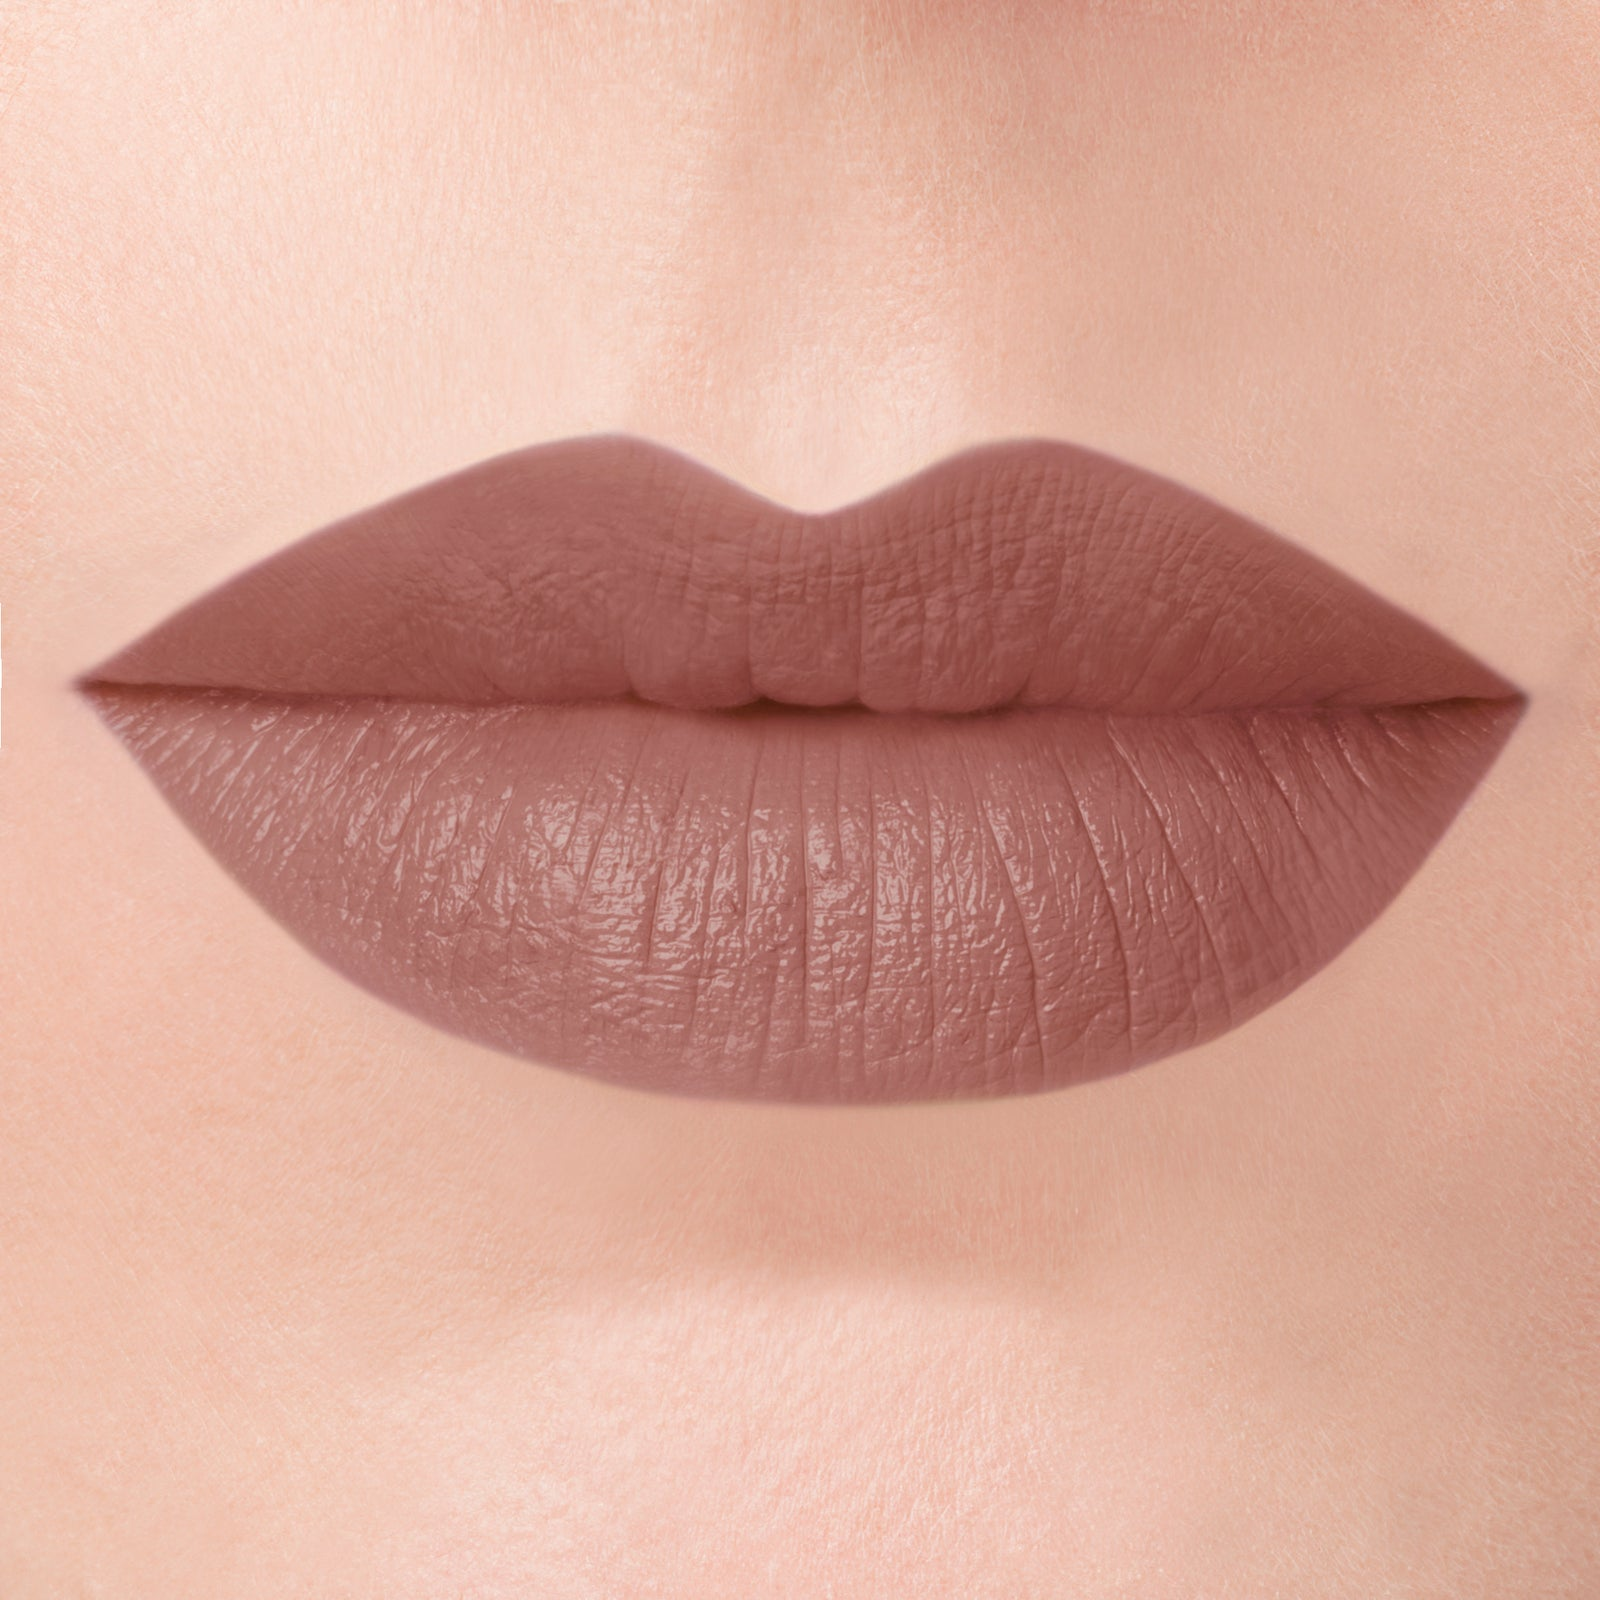 Oracle natural nude lipstick lip swatch